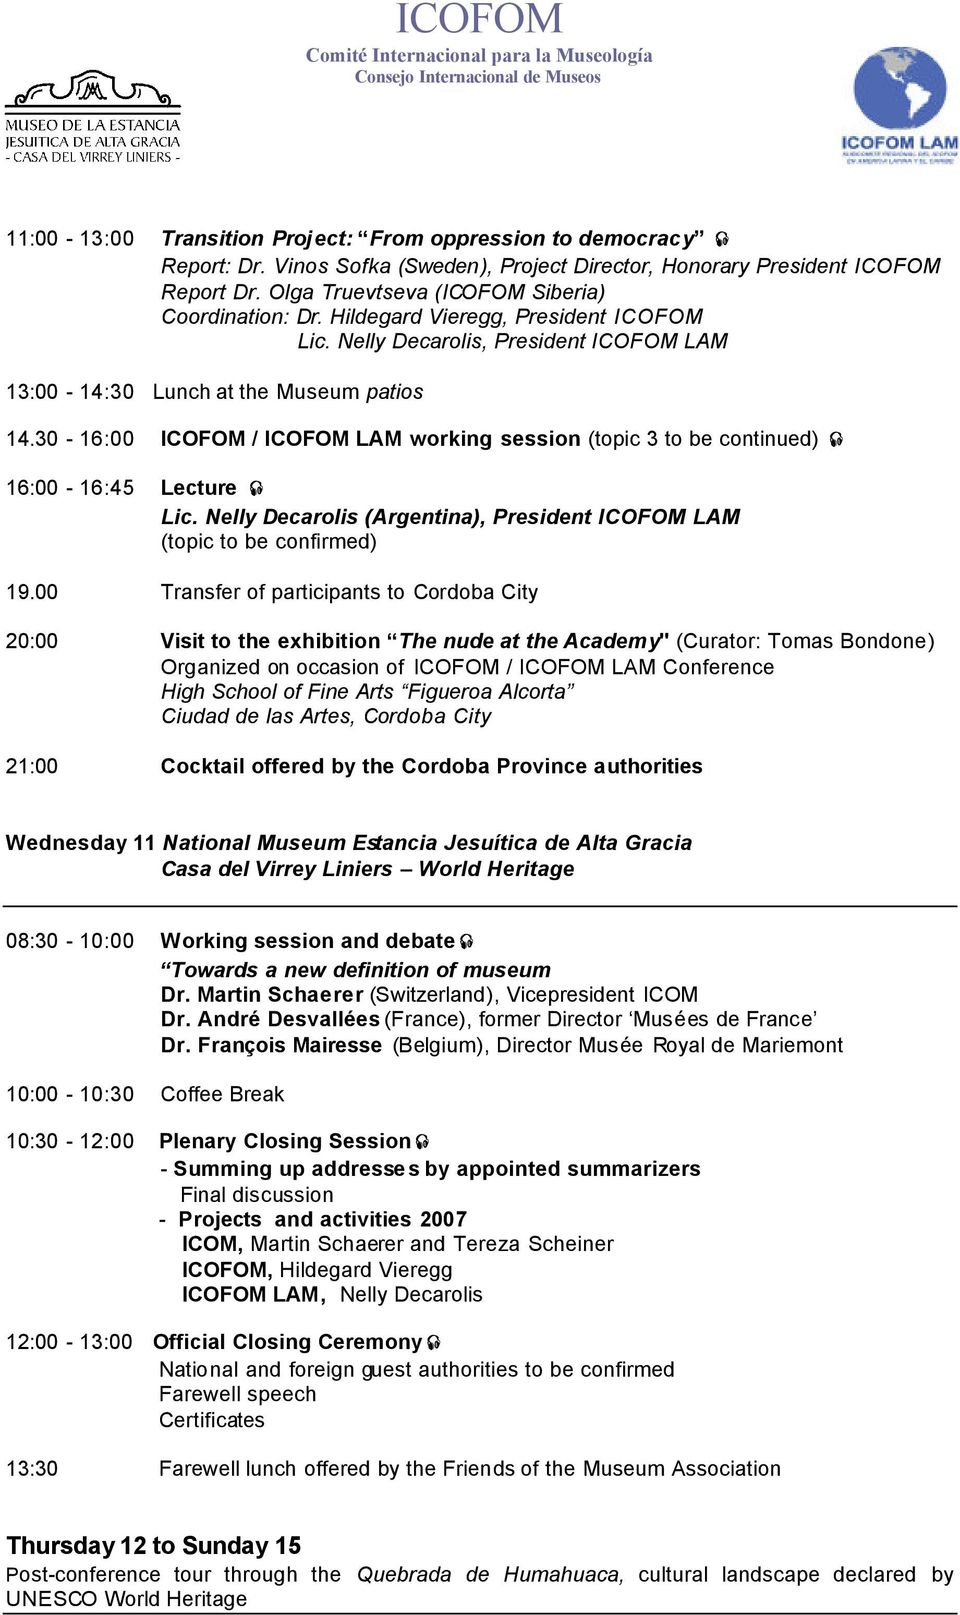 30-16:00 ICOFOM / ICOFOM LAM working session (topic 3 to be continued) 16:00-16:45 Lecture Lic. Nelly Decarolis (Argentina), President ICOFOM LAM (topic to be confirmed) 19.